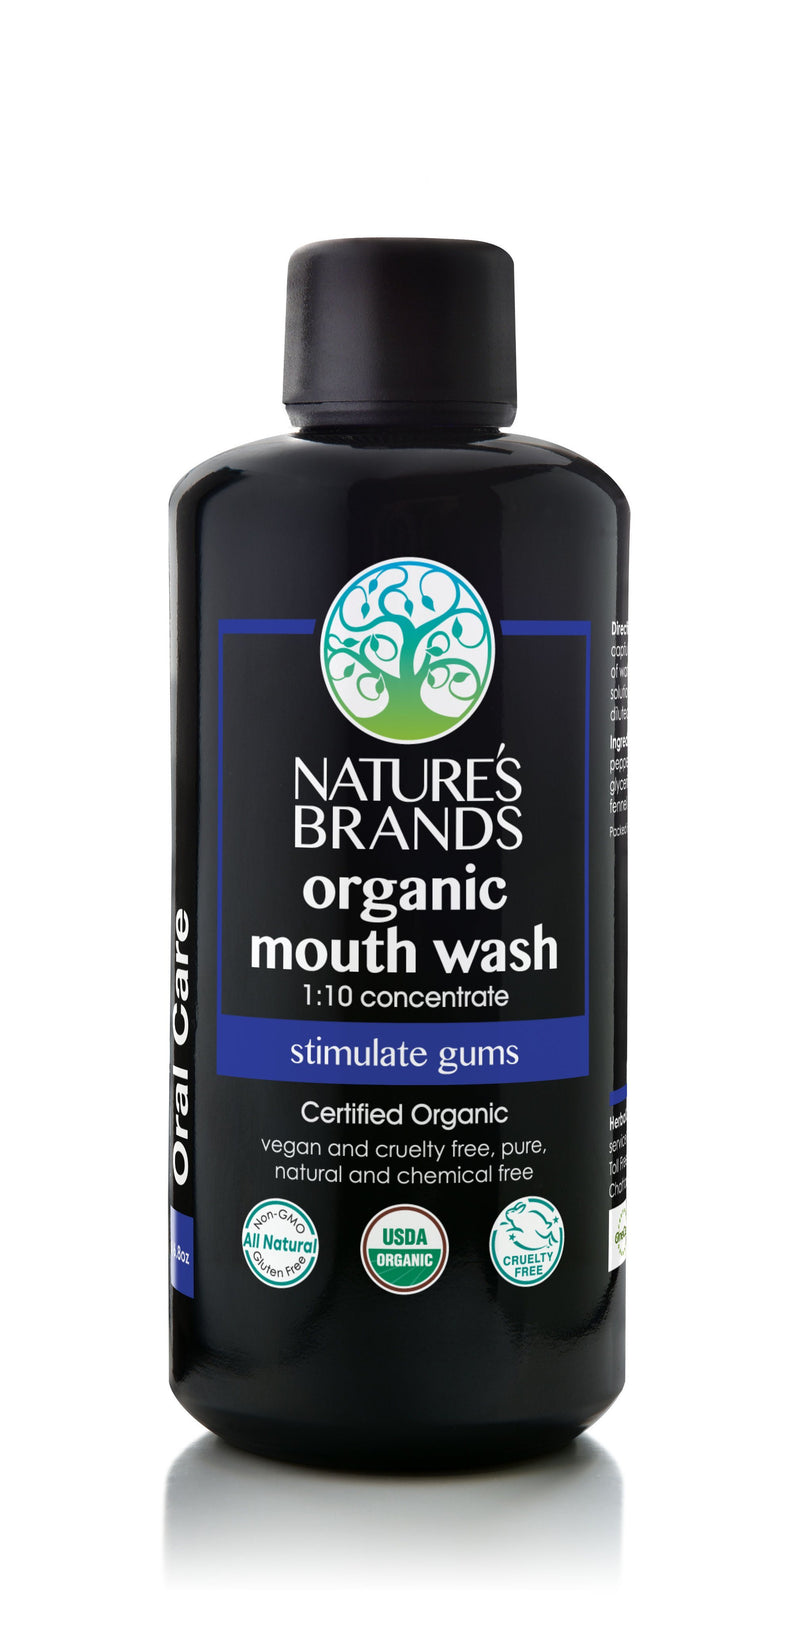 Herbal Choice Mari Organic Mouth Wash, 1:10 Concentrate - Herbal Choice Mari Organic Mouth Wash, 1:10 Concentrate - 6.8floz